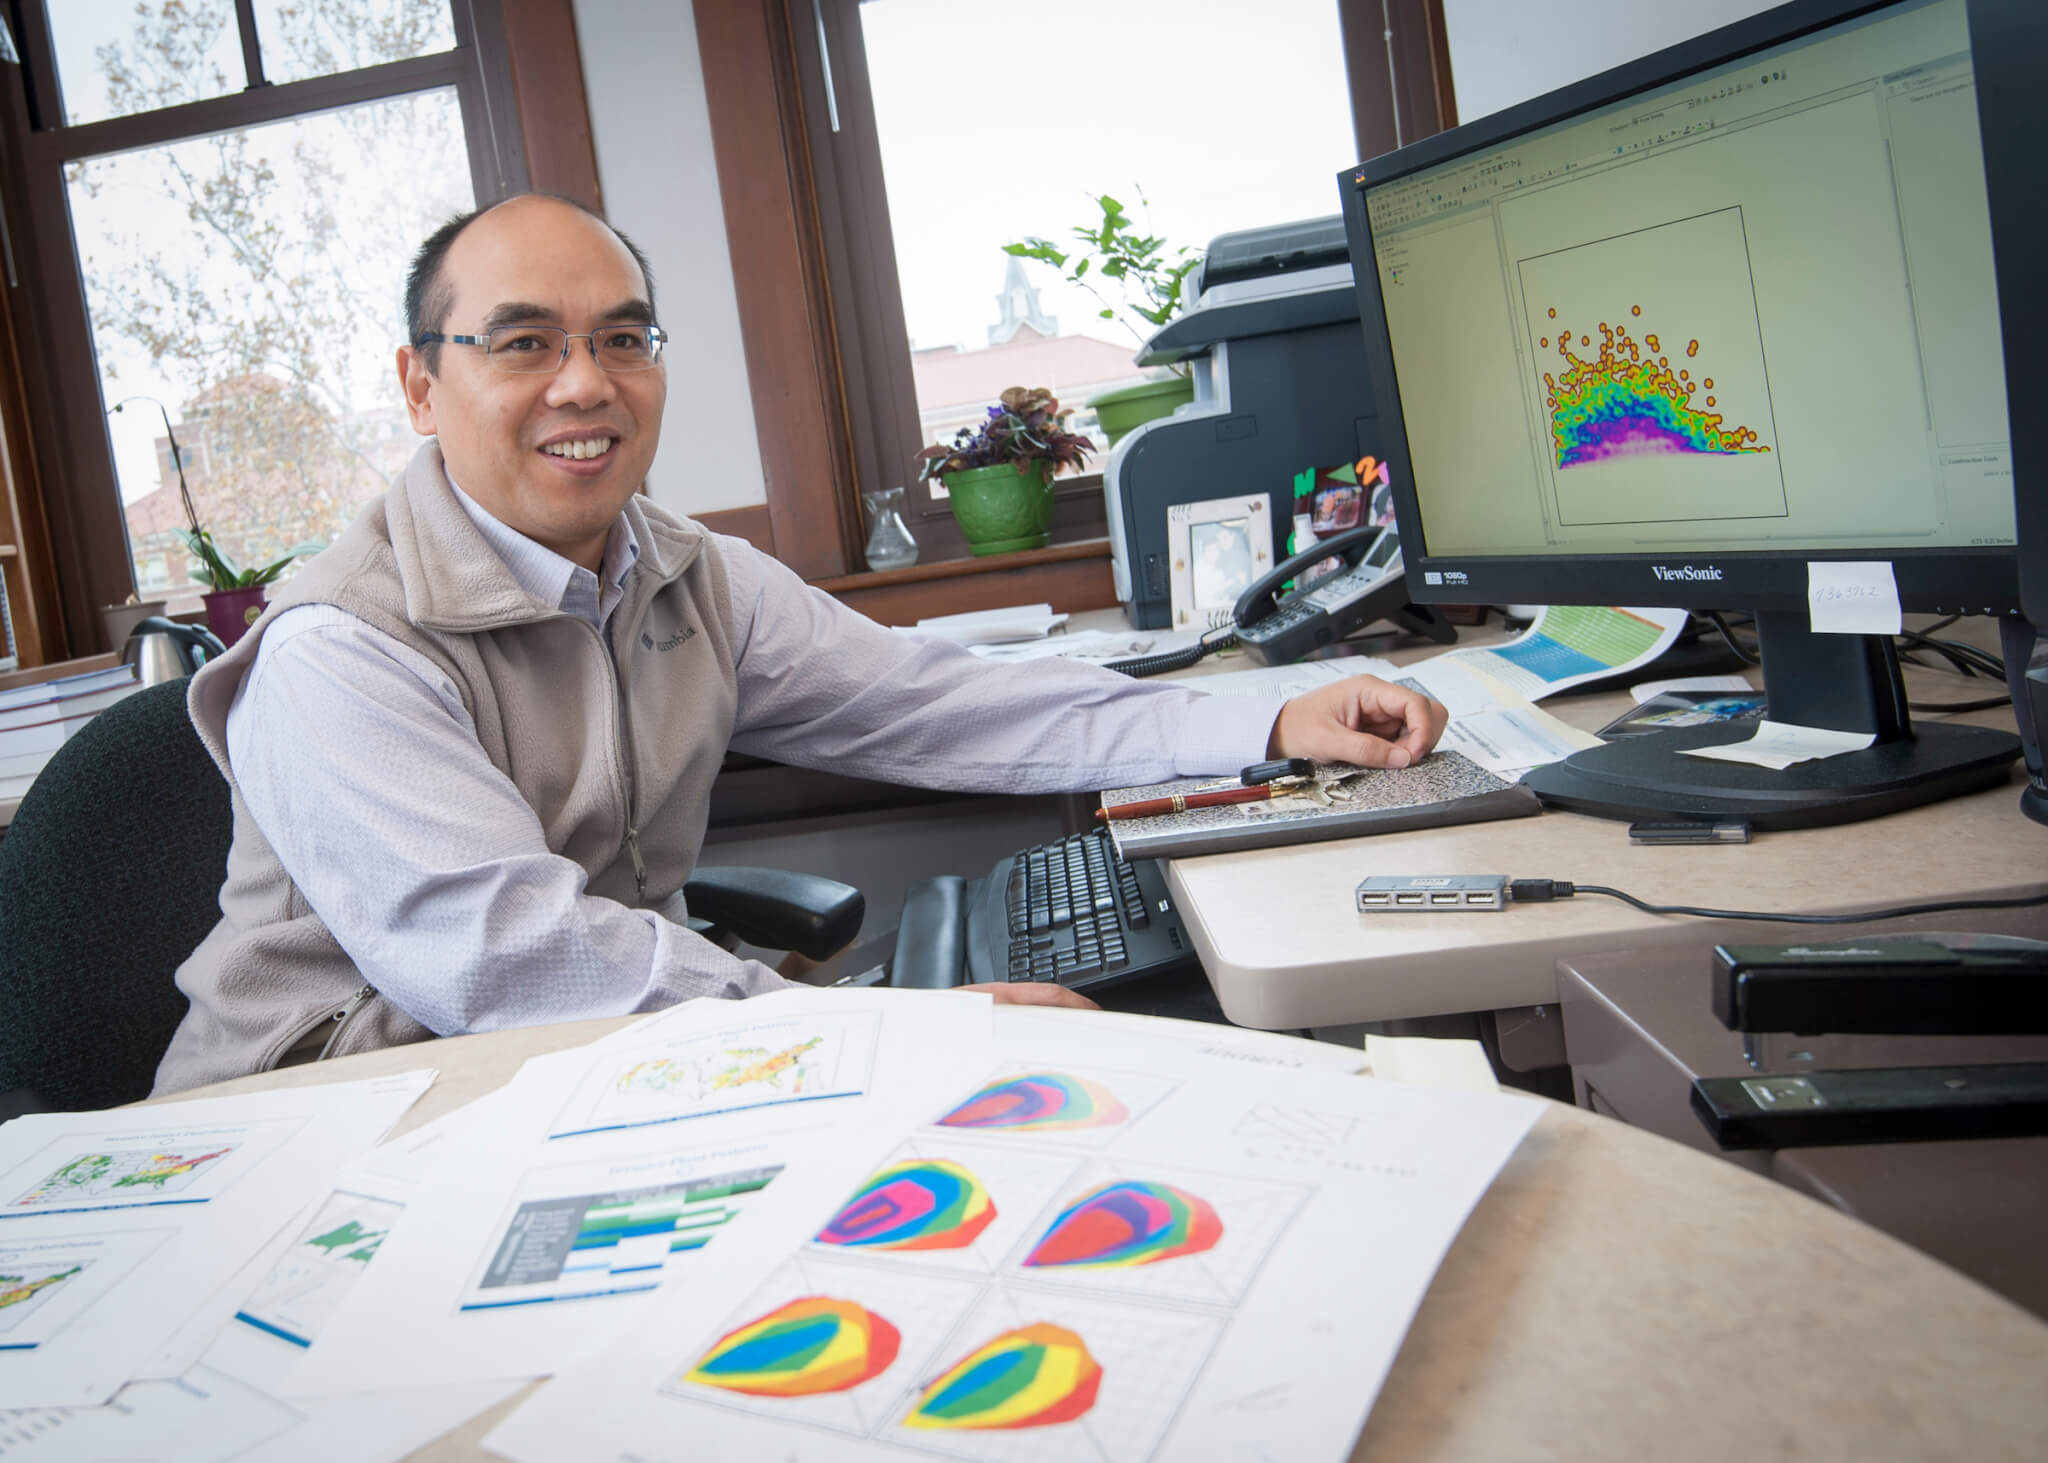 Songlin Fei has been a pioneer in the use of remote sensing in digital forestry efforts at Purdue University. (Purdue Agricultural Communication photo)